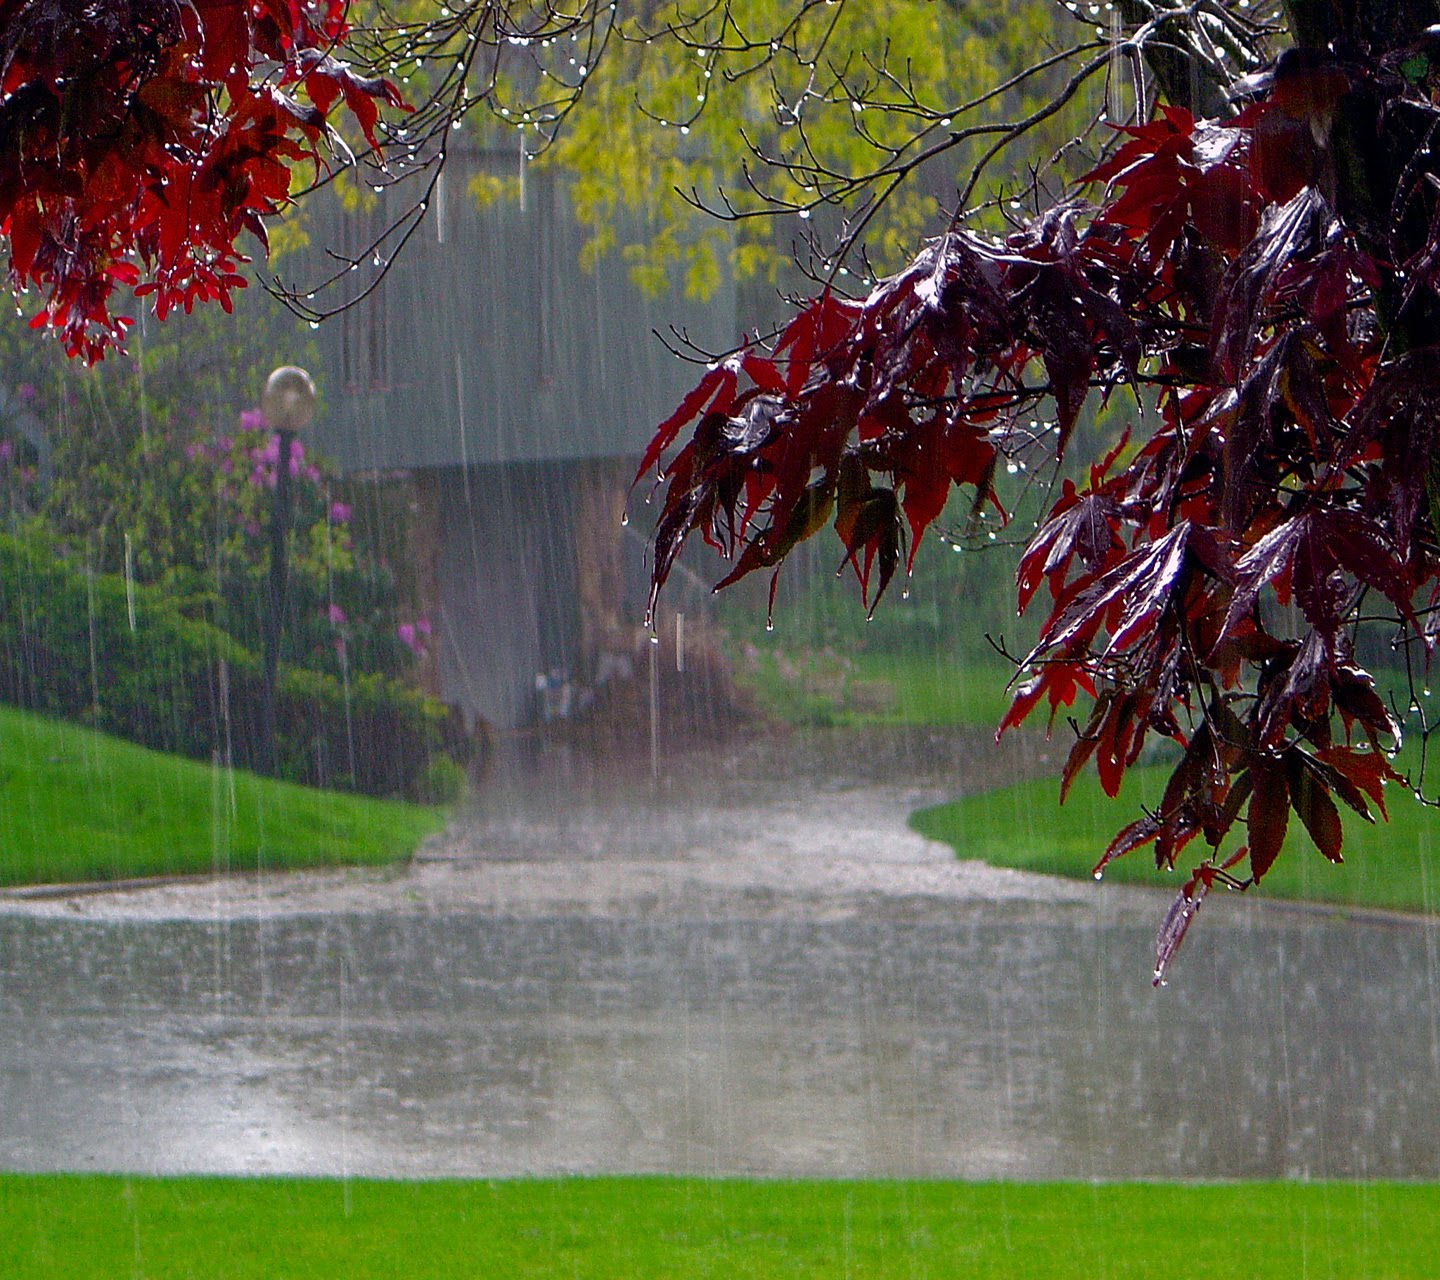 romantic rainy wallpaper - photo #7